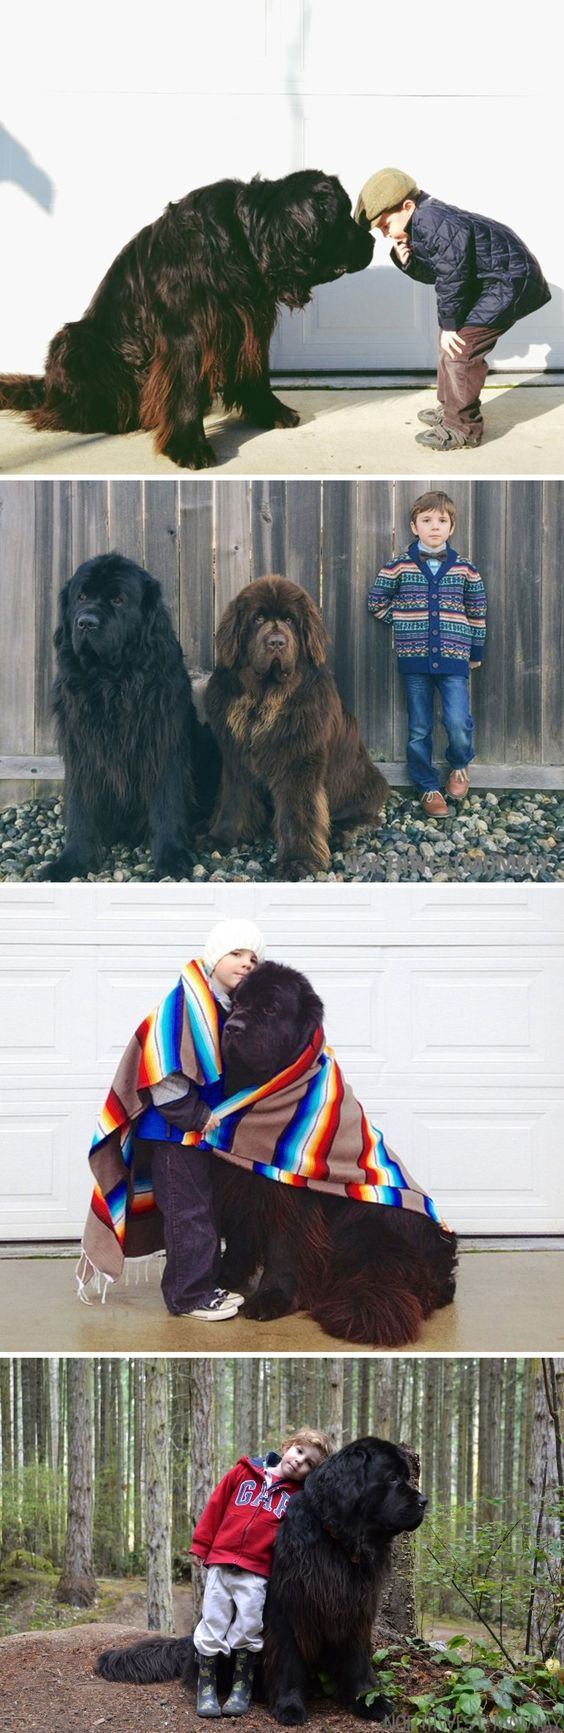 Adorable pictures of  Newfoundland Dogs!! Want Want Want big bear lap dog:) I will name you whiskey or brew